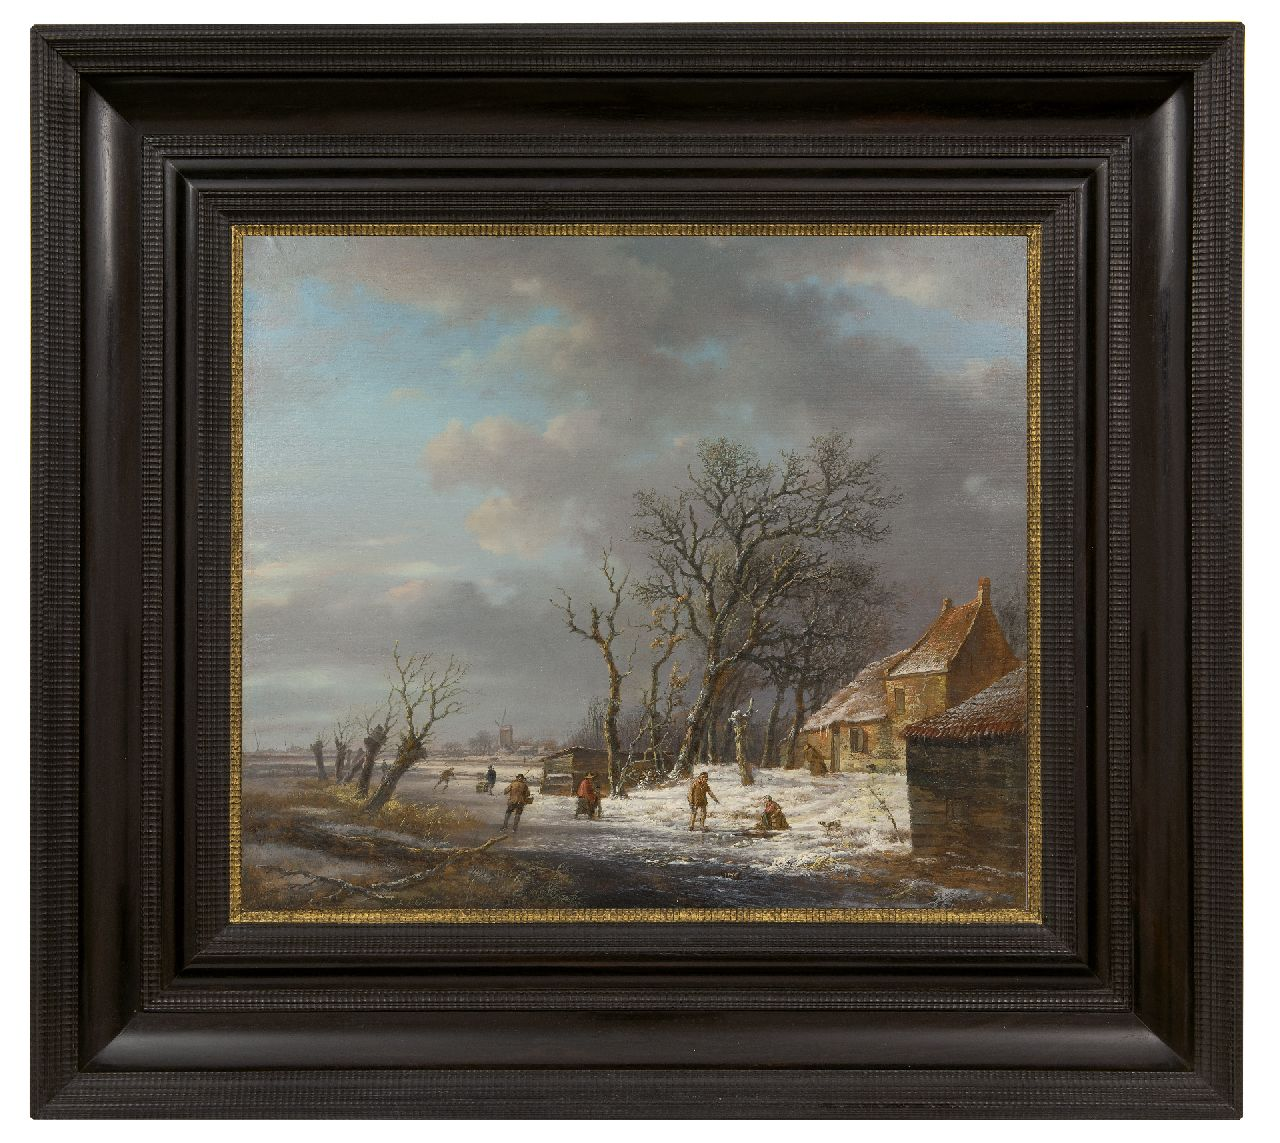 Schelfhout A.  | Andreas Schelfhout | Paintings offered for sale | Winter landscape with skaters and a washerwoman at an ice hole, oil on panel 37.0 x 43.1 cm, signed l.l. and painted ca. 1820